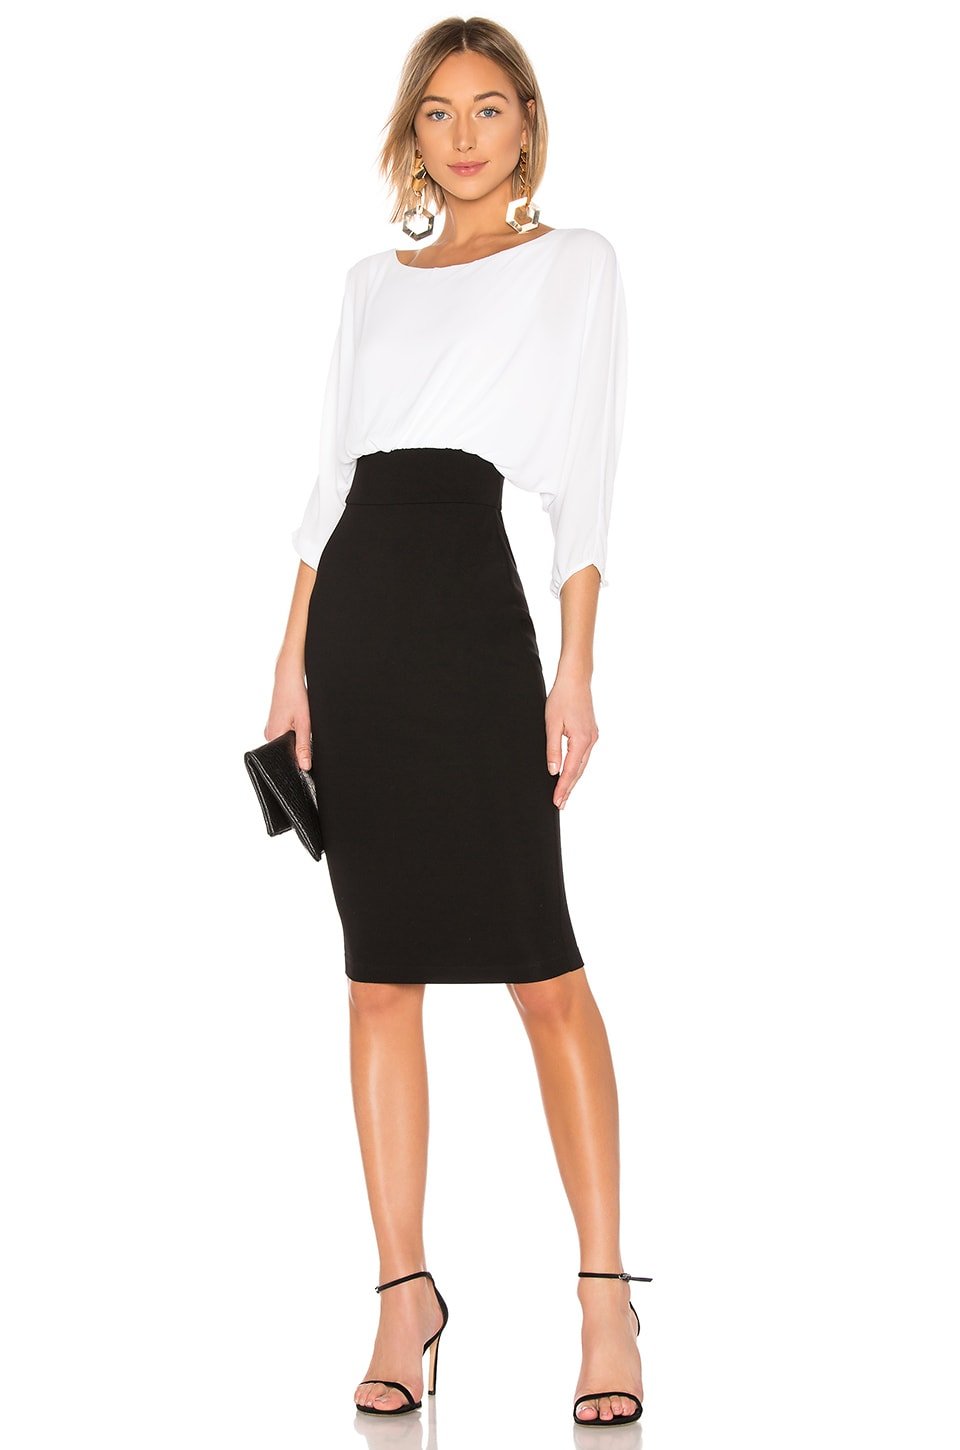 Laws Of Attraction Dress             Bailey 44                                                                                                       CA$ 263.27 9